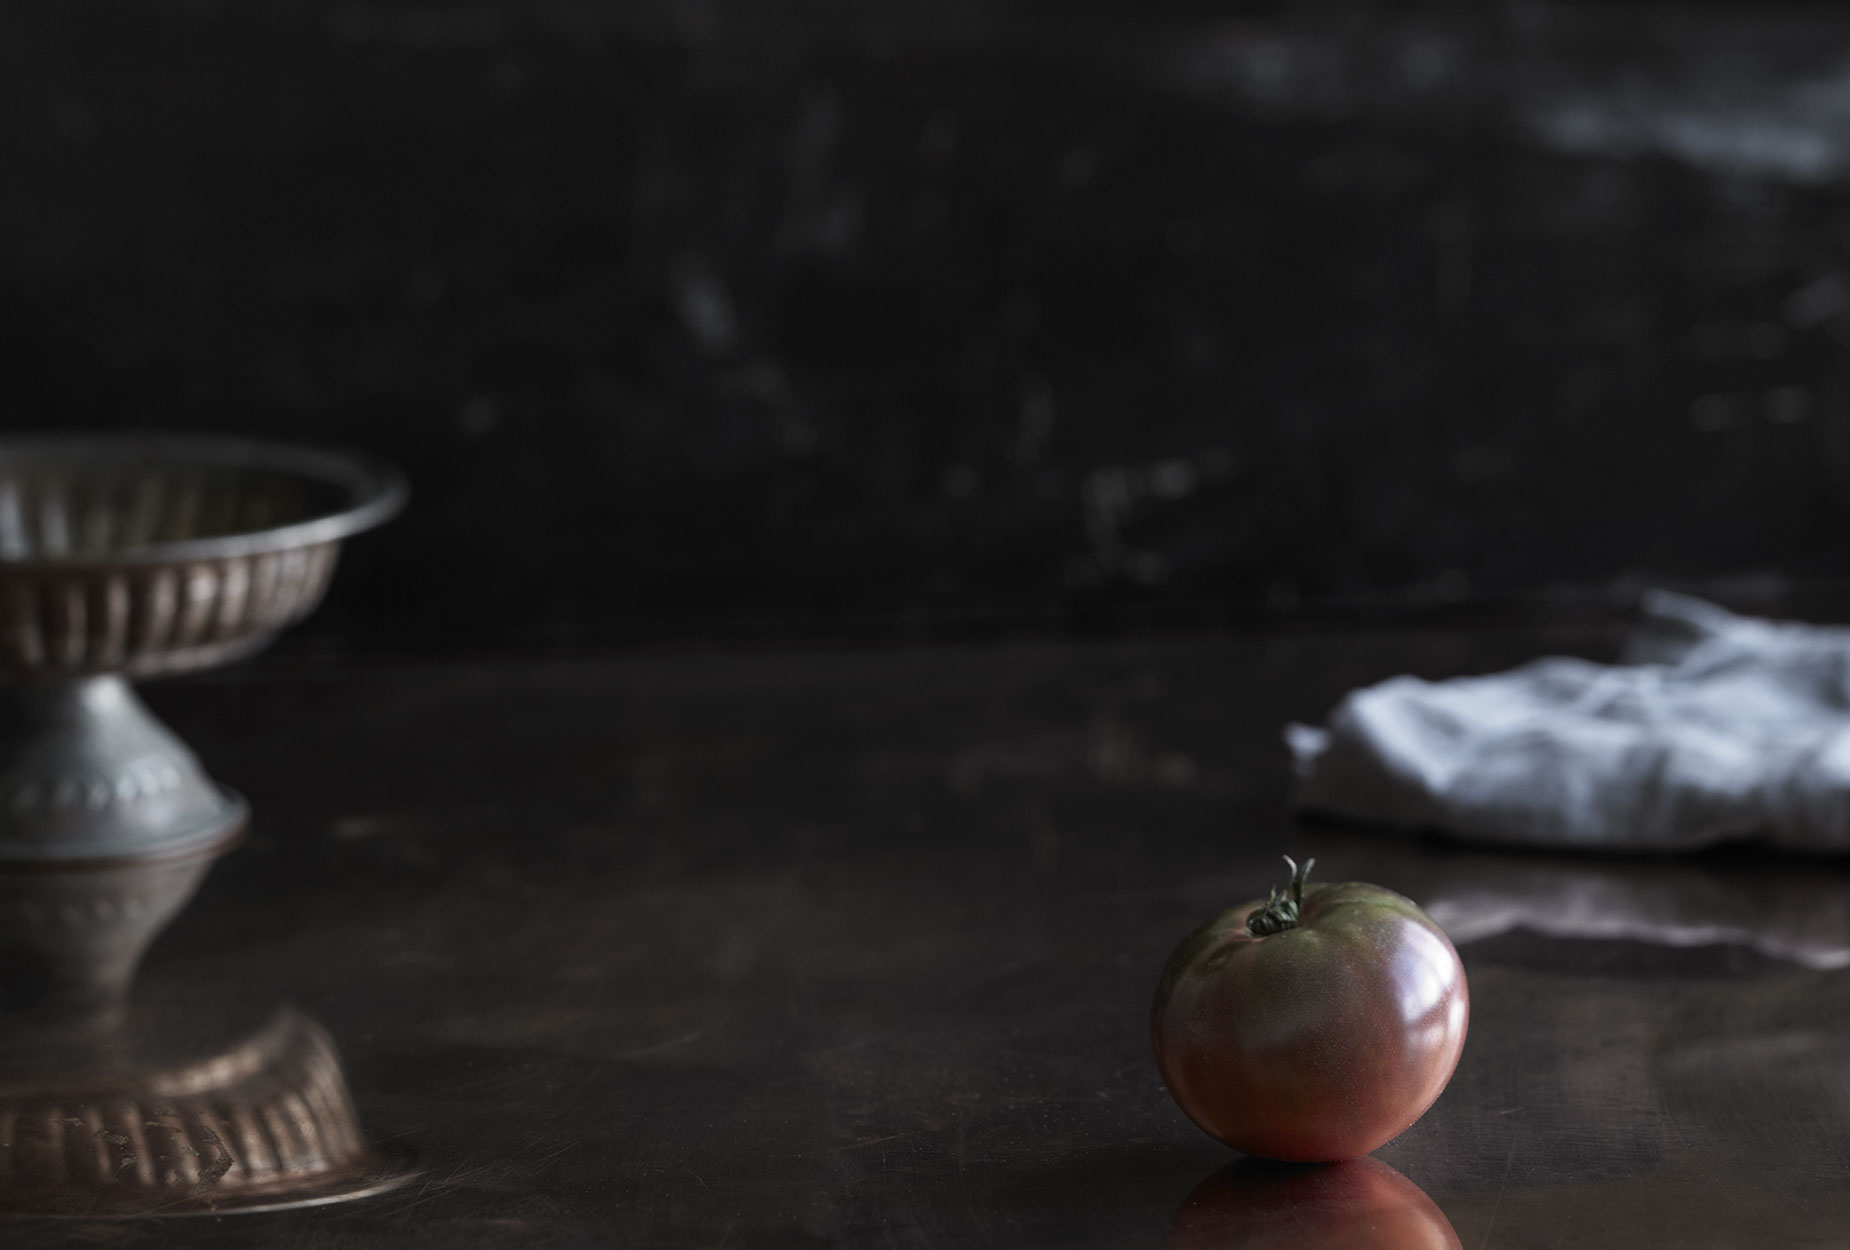 Tomato | Product Still Life Photographer, Marshall Gordon